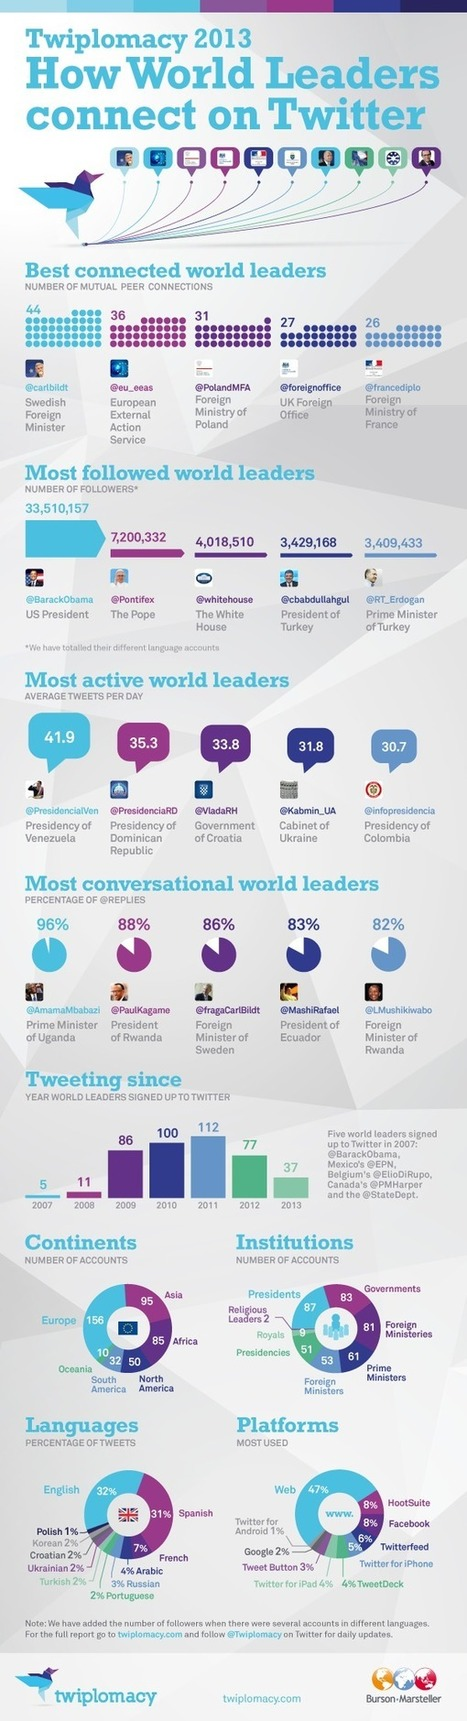 Twiplomacy 2013 - i leader del mondo su Twitter | Comunicazione Politica e Social Media in Italia | Scoop.it